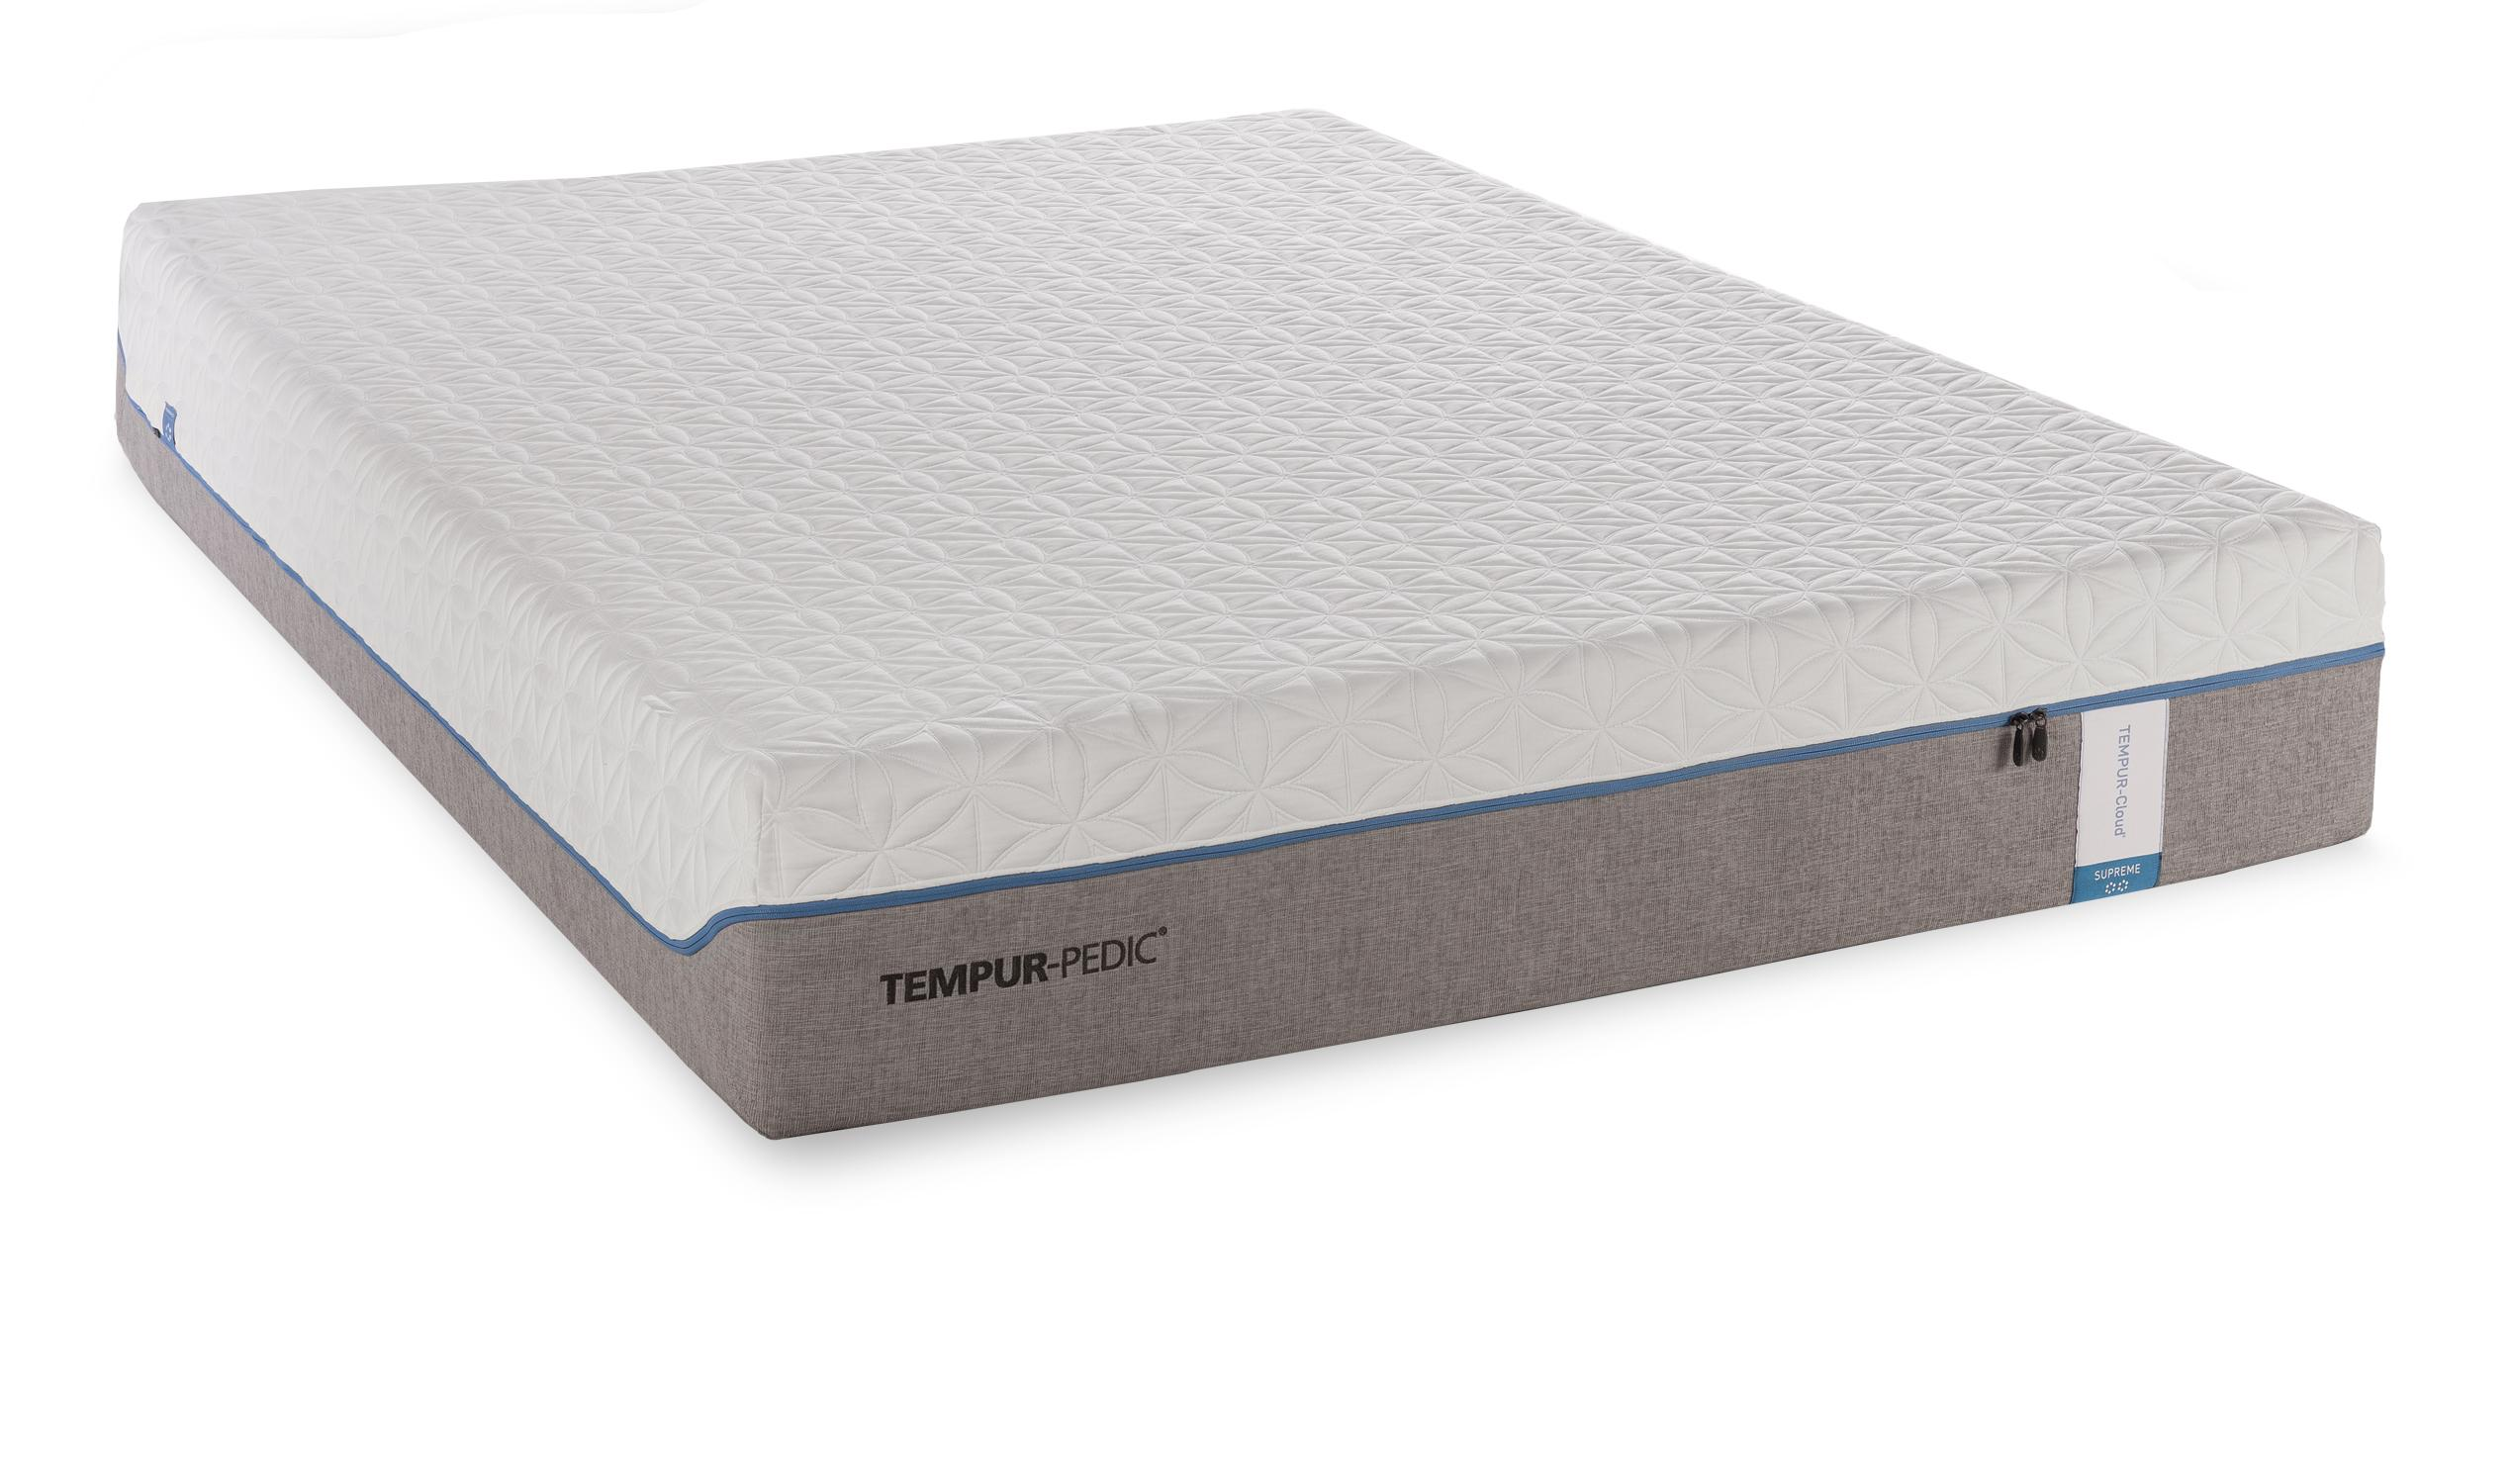 Tempur-Pedic® TEMPUR-Cloud Supreme Queen Soft Mattress - Item Number: 10240250